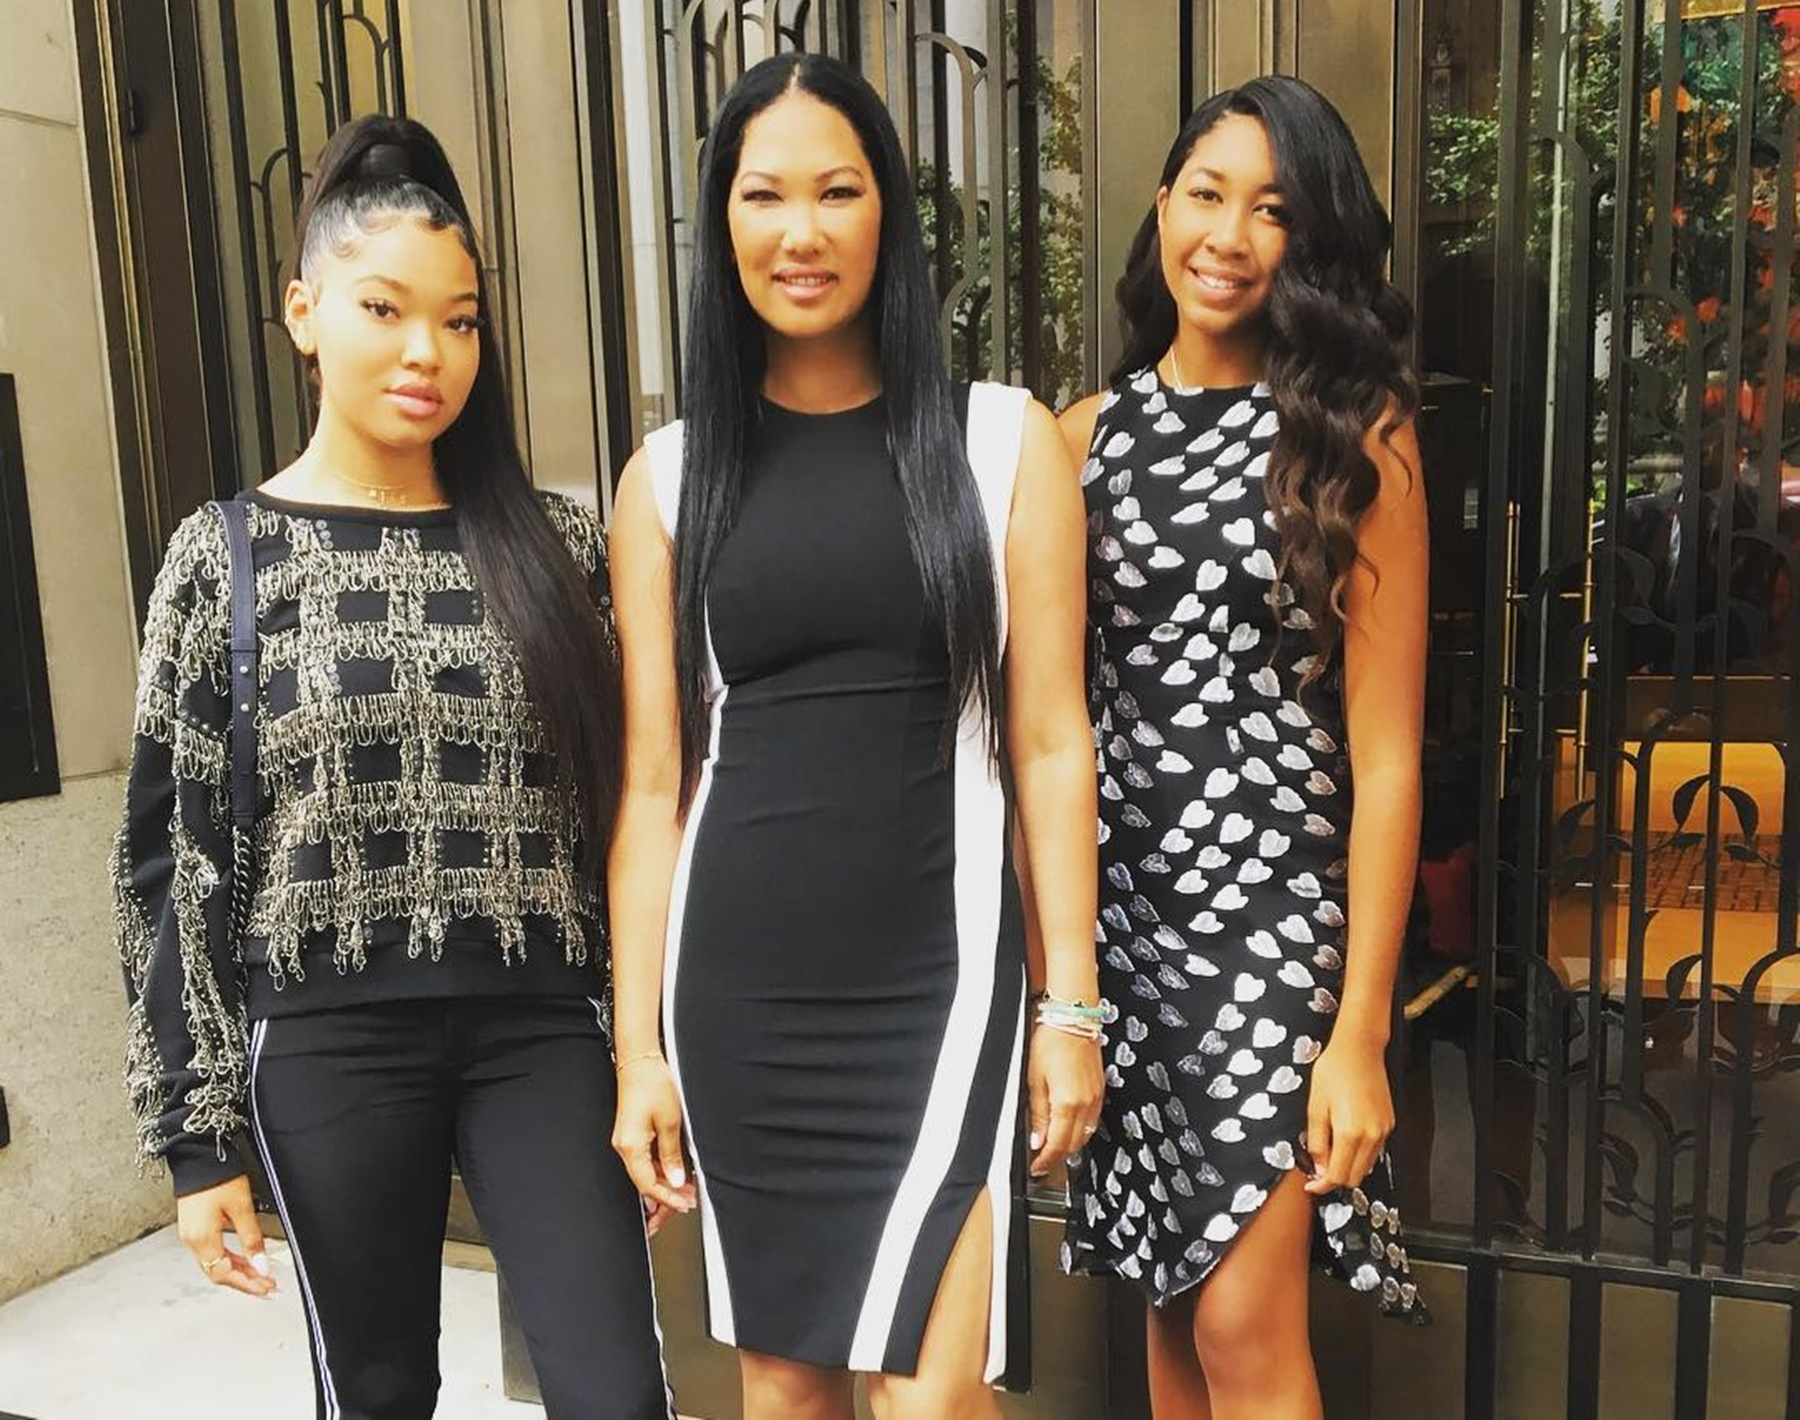 kimora-lee-simmons-is-celebrating-with-daughter-aoki-in-video-and-fans-are-applauding-the-accomplishment